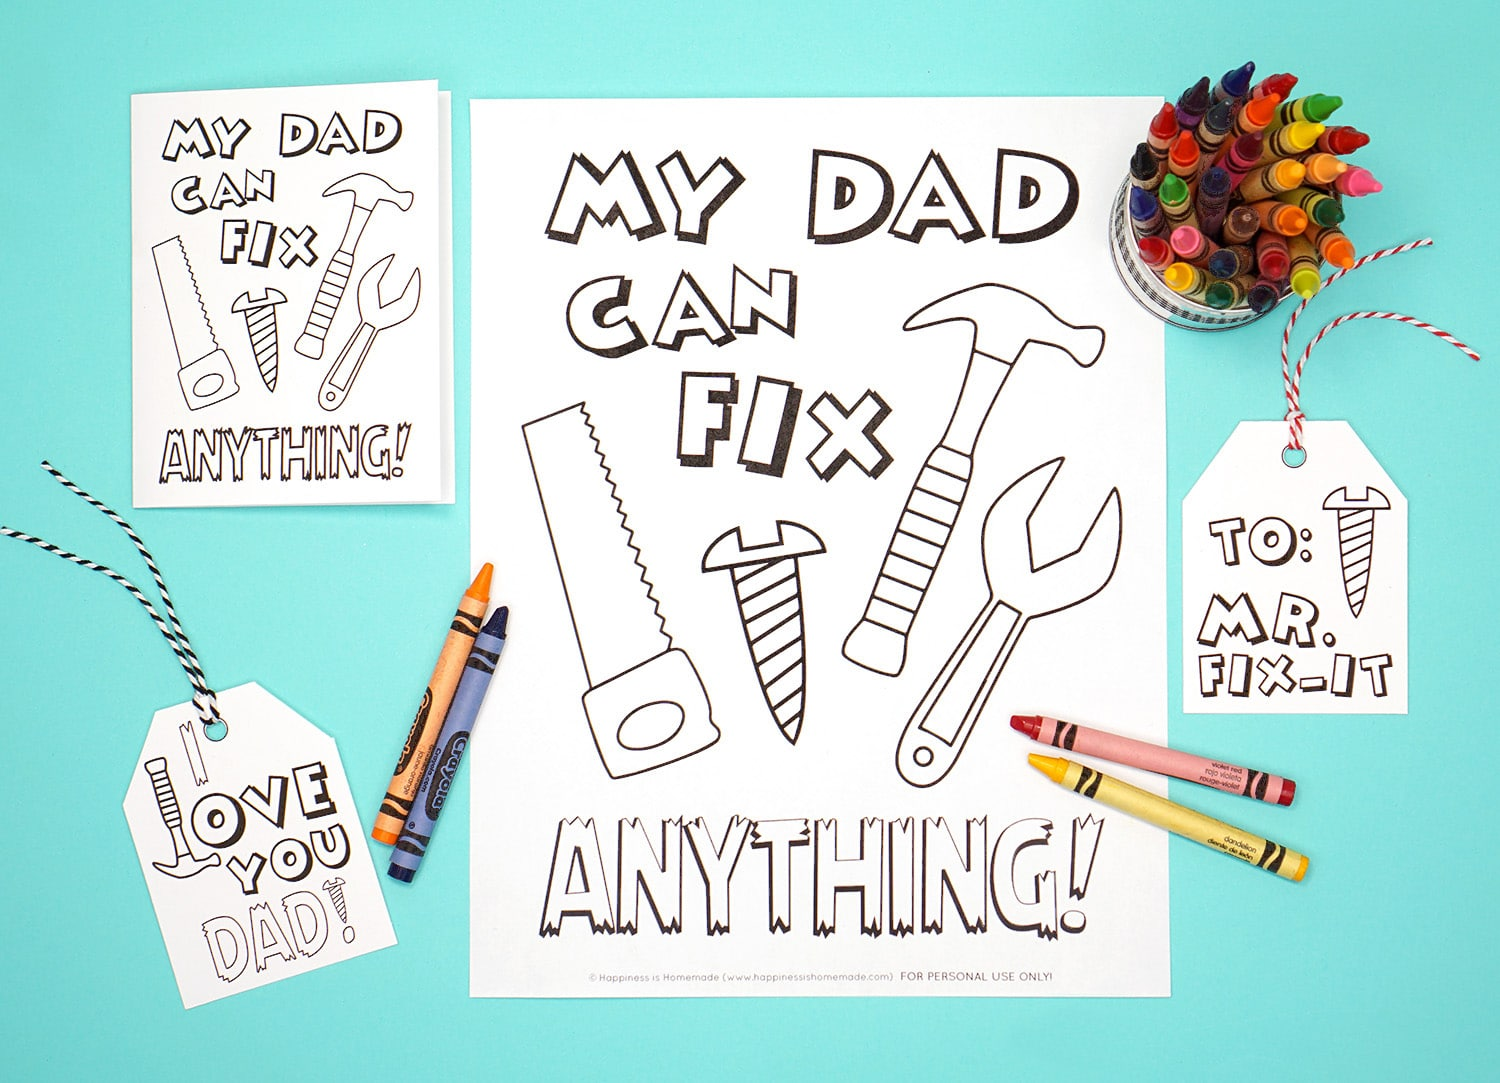 image regarding Father's Day Printable Cards known as Printable Fathers Working day Card + Coloring Web page - Contentment is